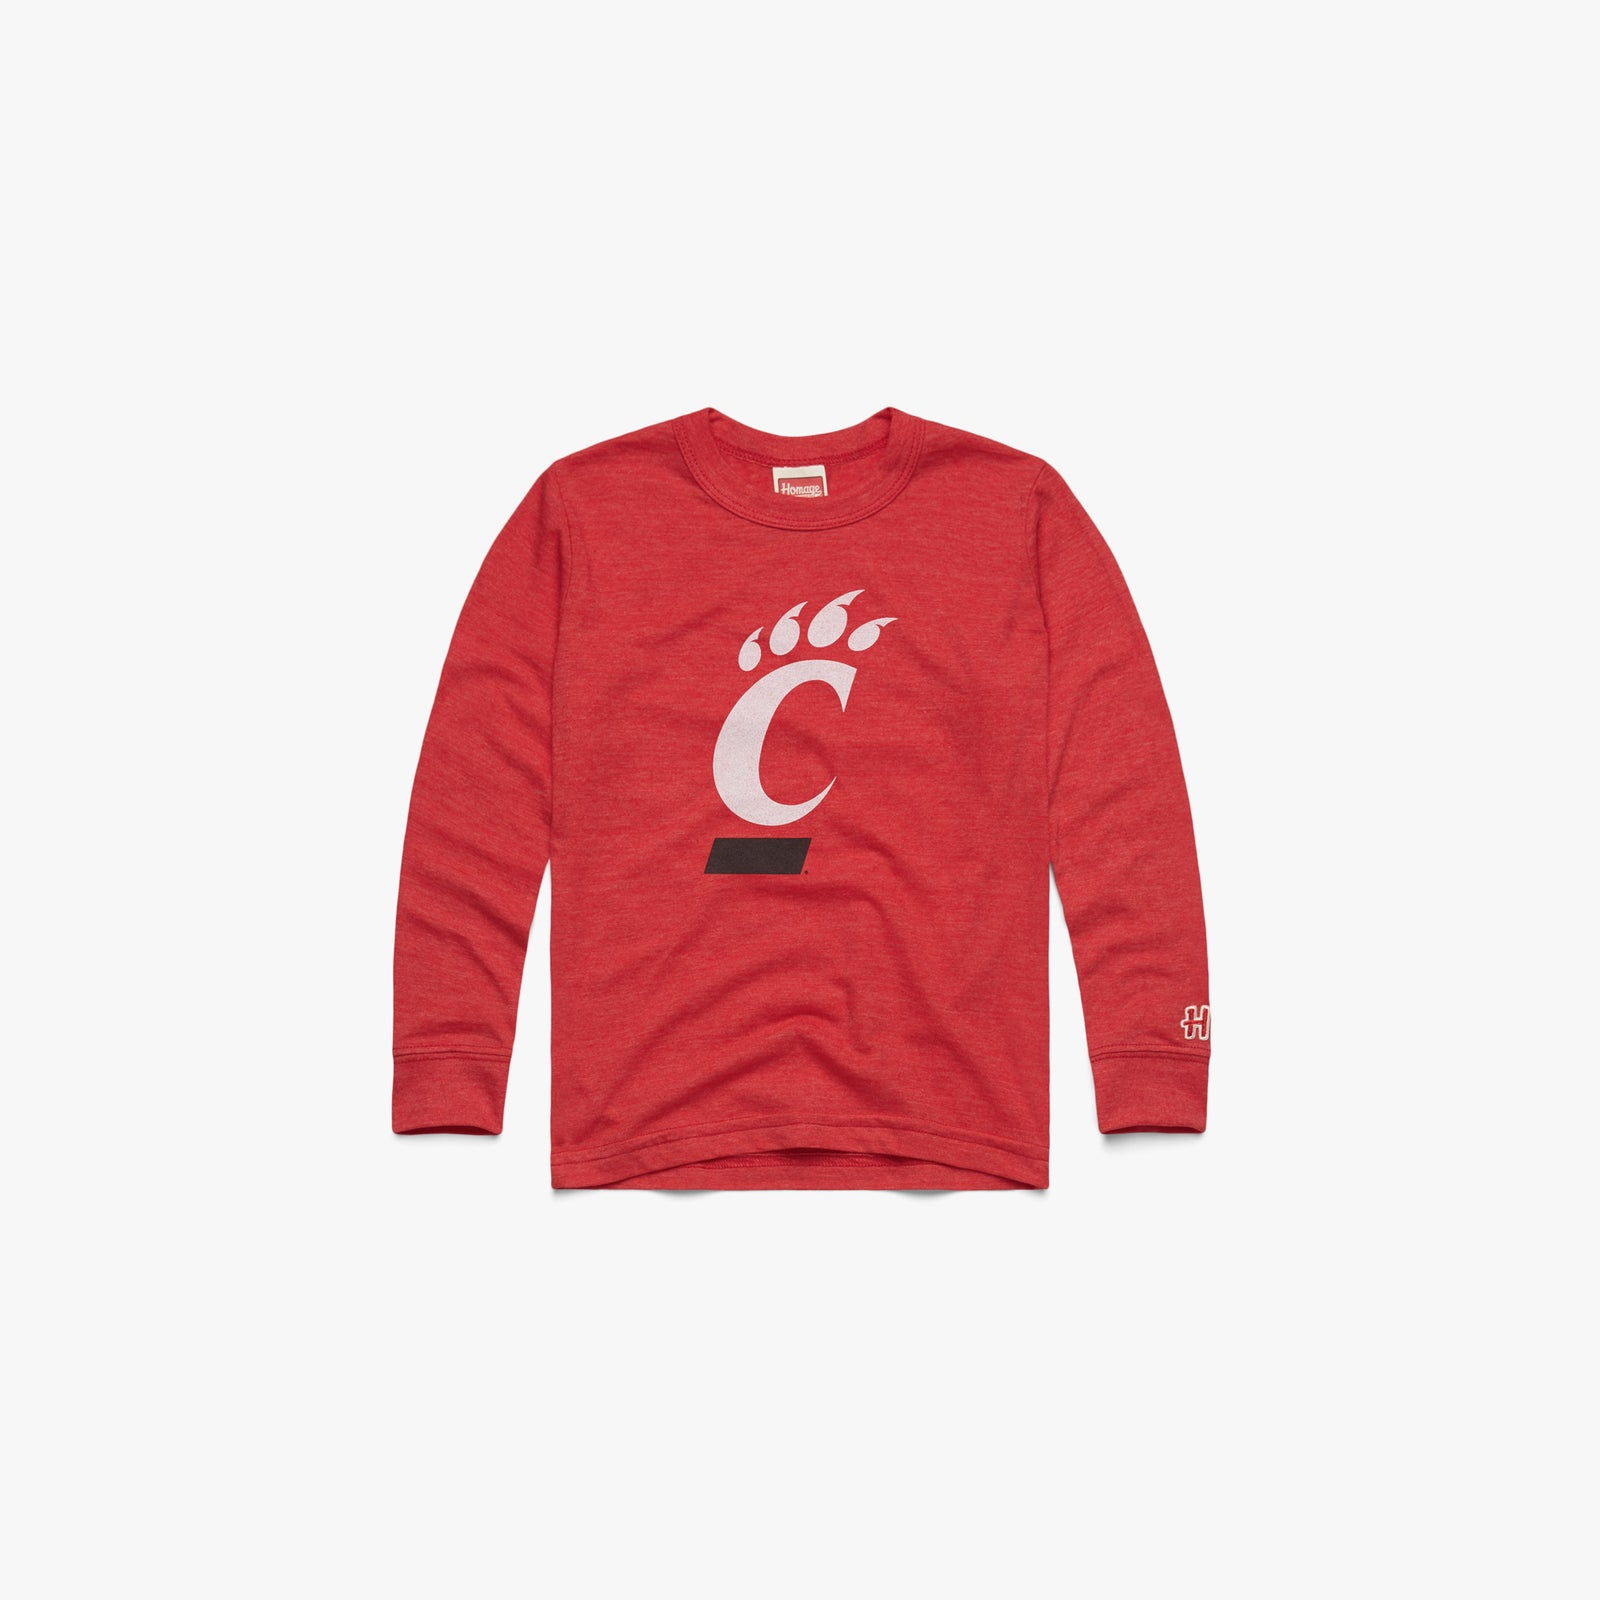 Youth Red And Black Long Sleeve Tee